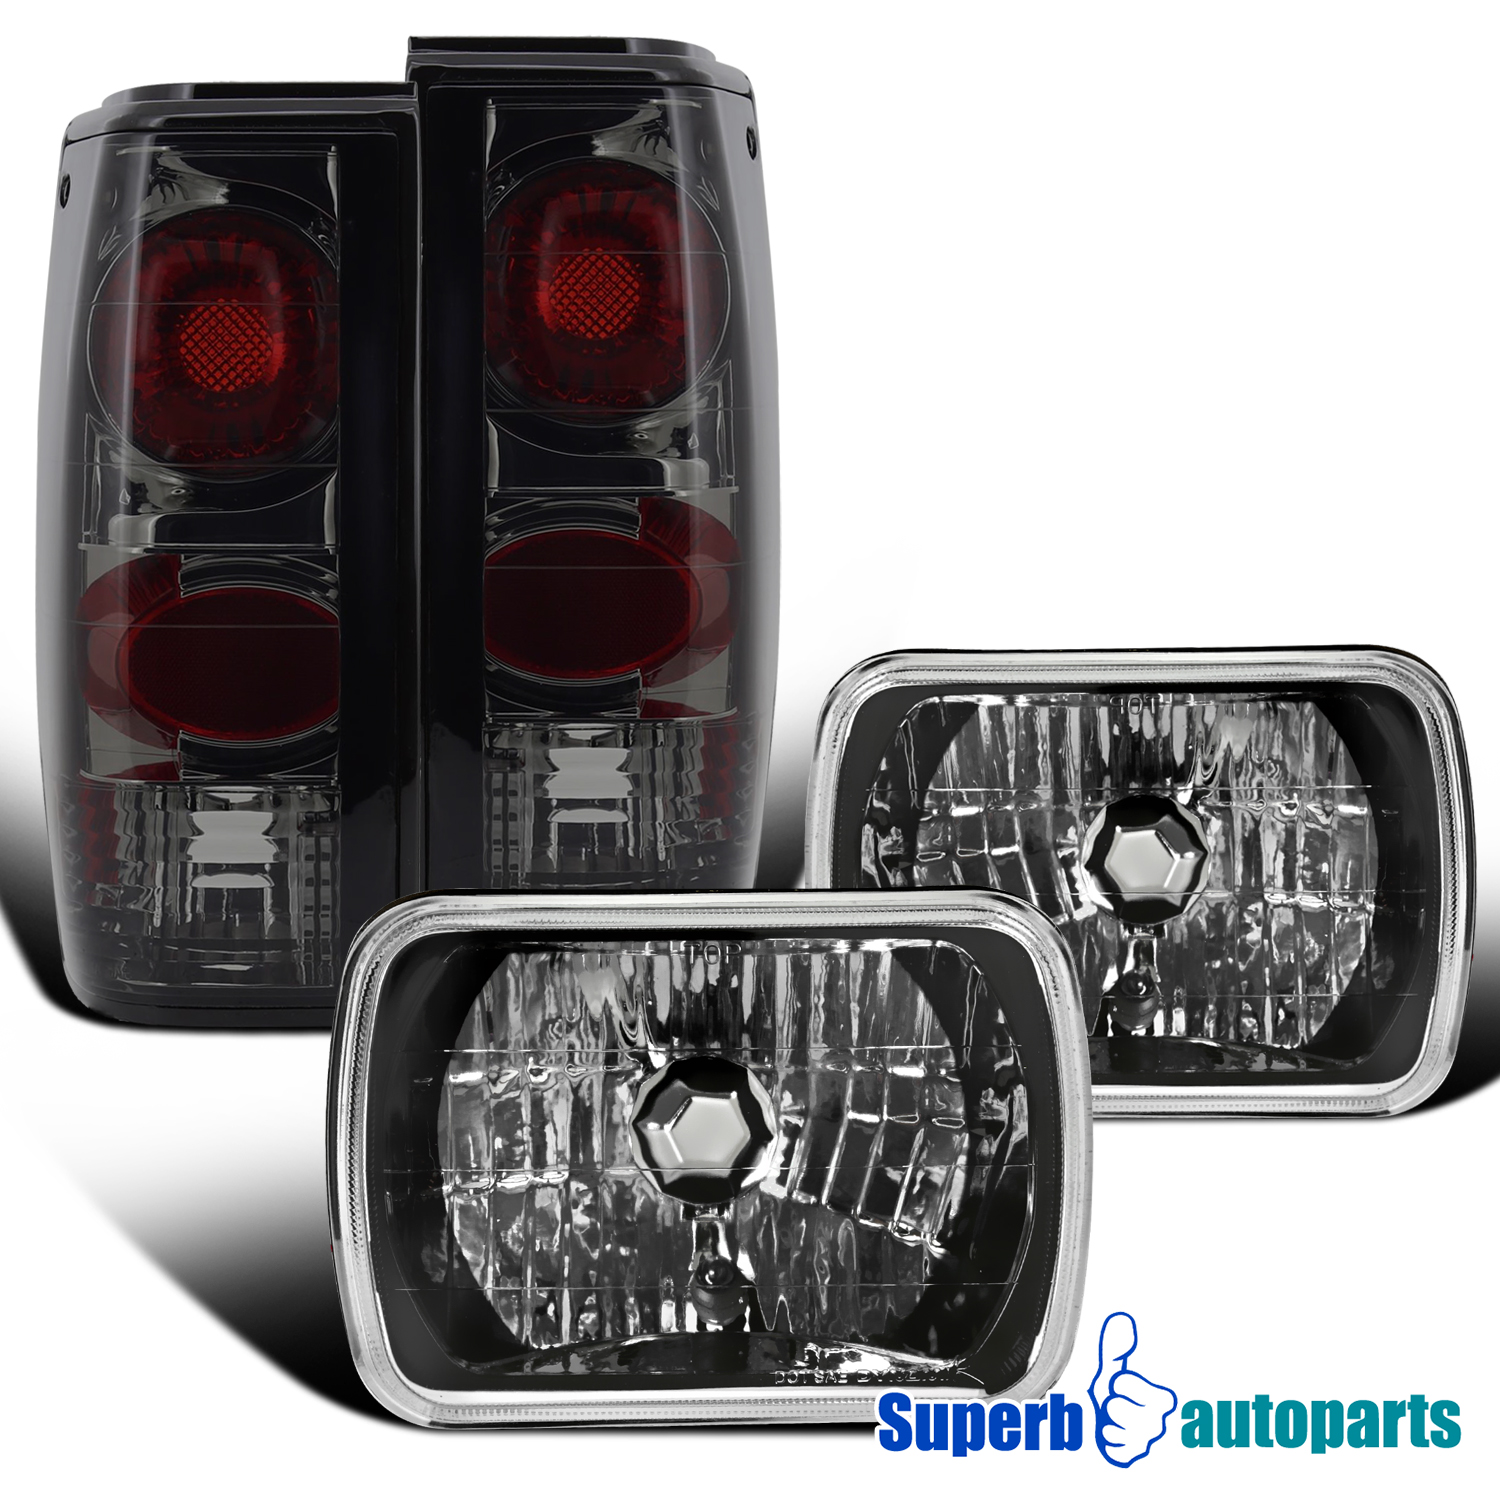 Details about For 82-93 Chevy S10/ 83-90 GMC S15 Sonoma Headlights  Black+Tail Lamp Smoke